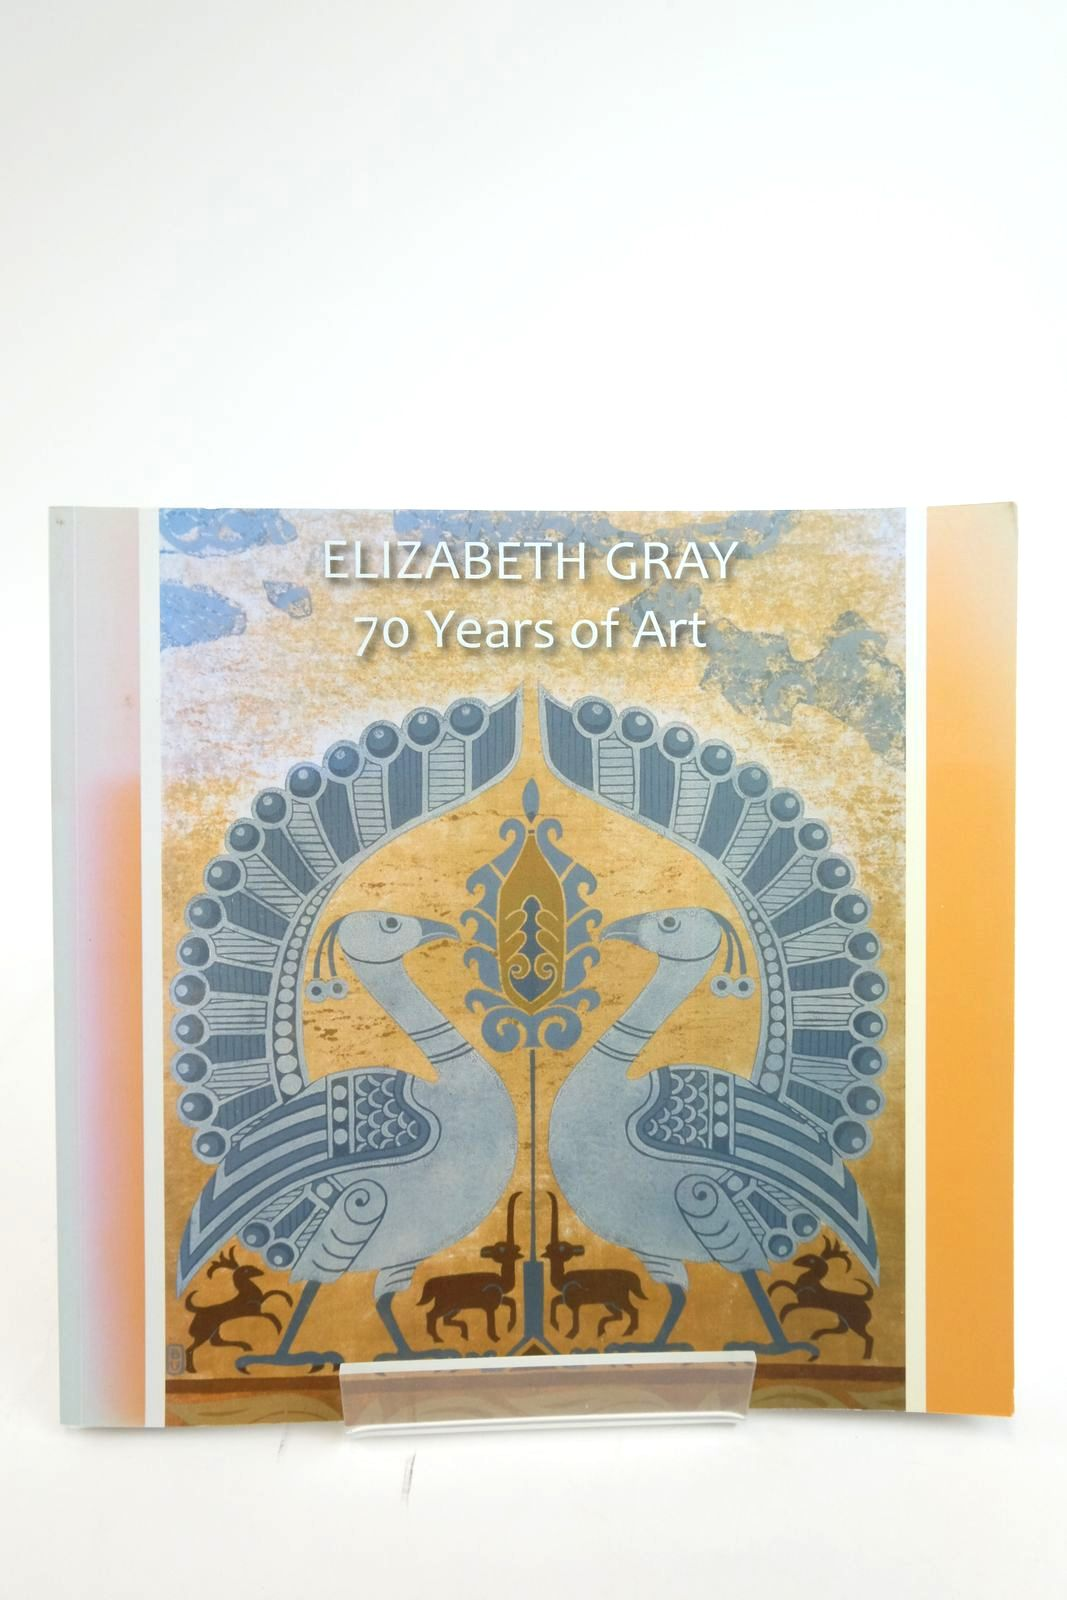 Photo of ELIZABETH GRAY: 70 YEARS OF ART written by Trapnell, David Trapnell, Simon illustrated by Gray, Elizabeth published by Nature In Art Trust (STOCK CODE: 2135054)  for sale by Stella & Rose's Books